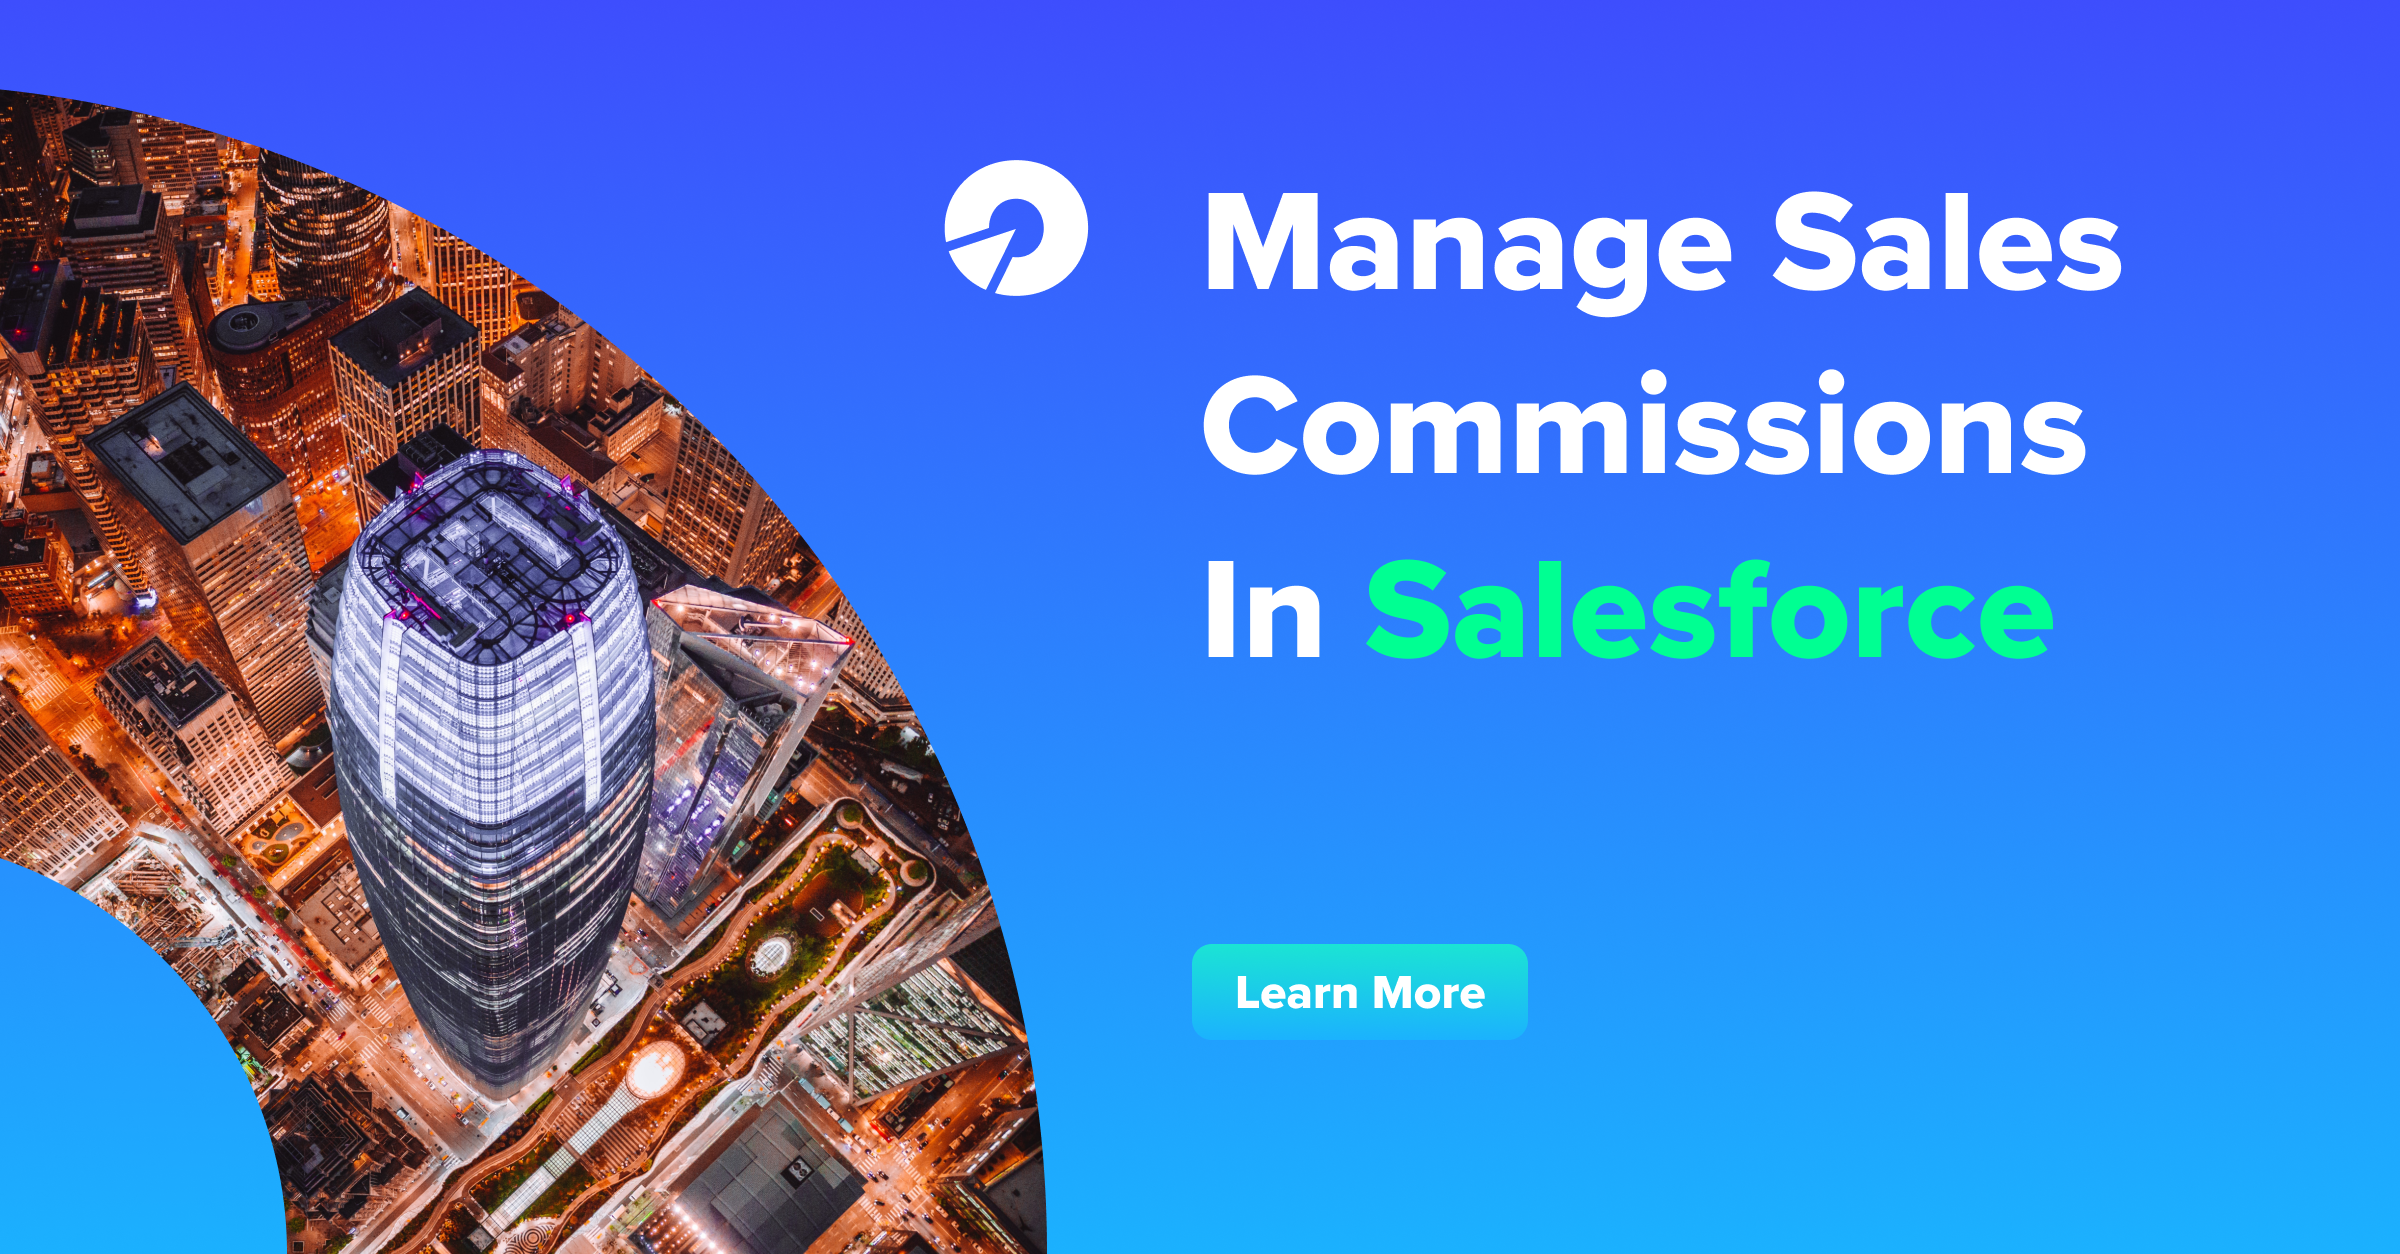 Manage Sales Commissions In Salesforce